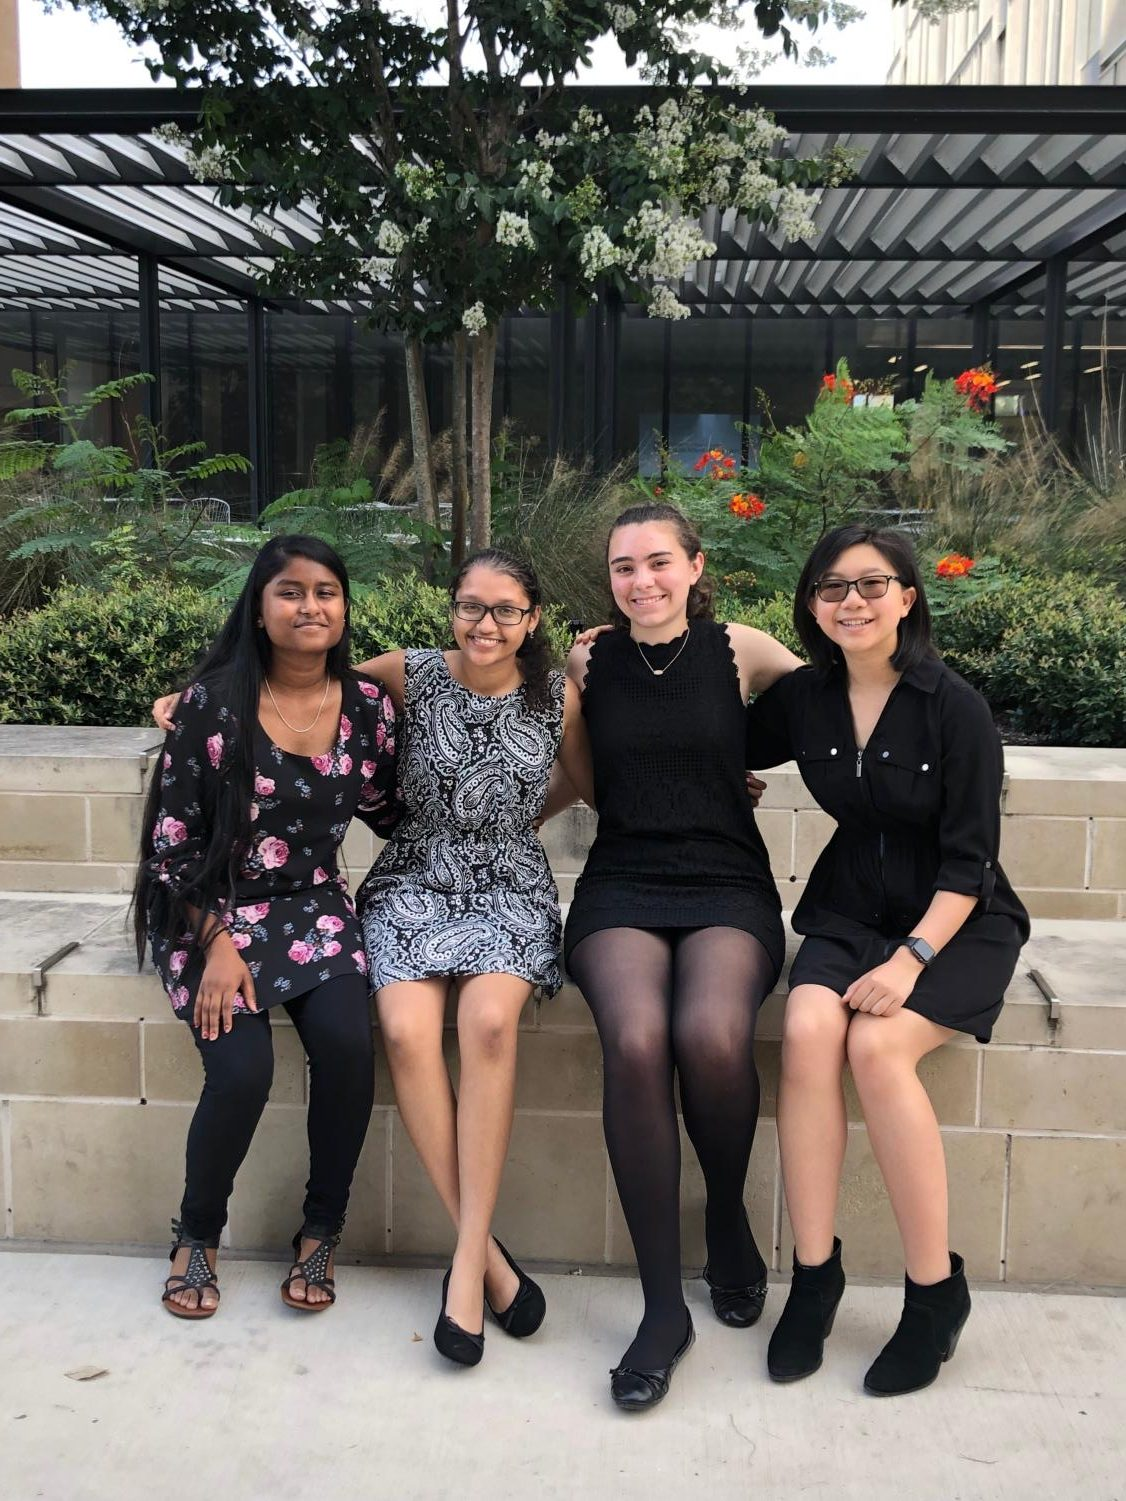 Students Linsy Stephen '22, Srilekha Cherukuvada '21, Abigail Dewhirst '21, and Emily Tran '21 pose for a picture outside of the music building after performing.